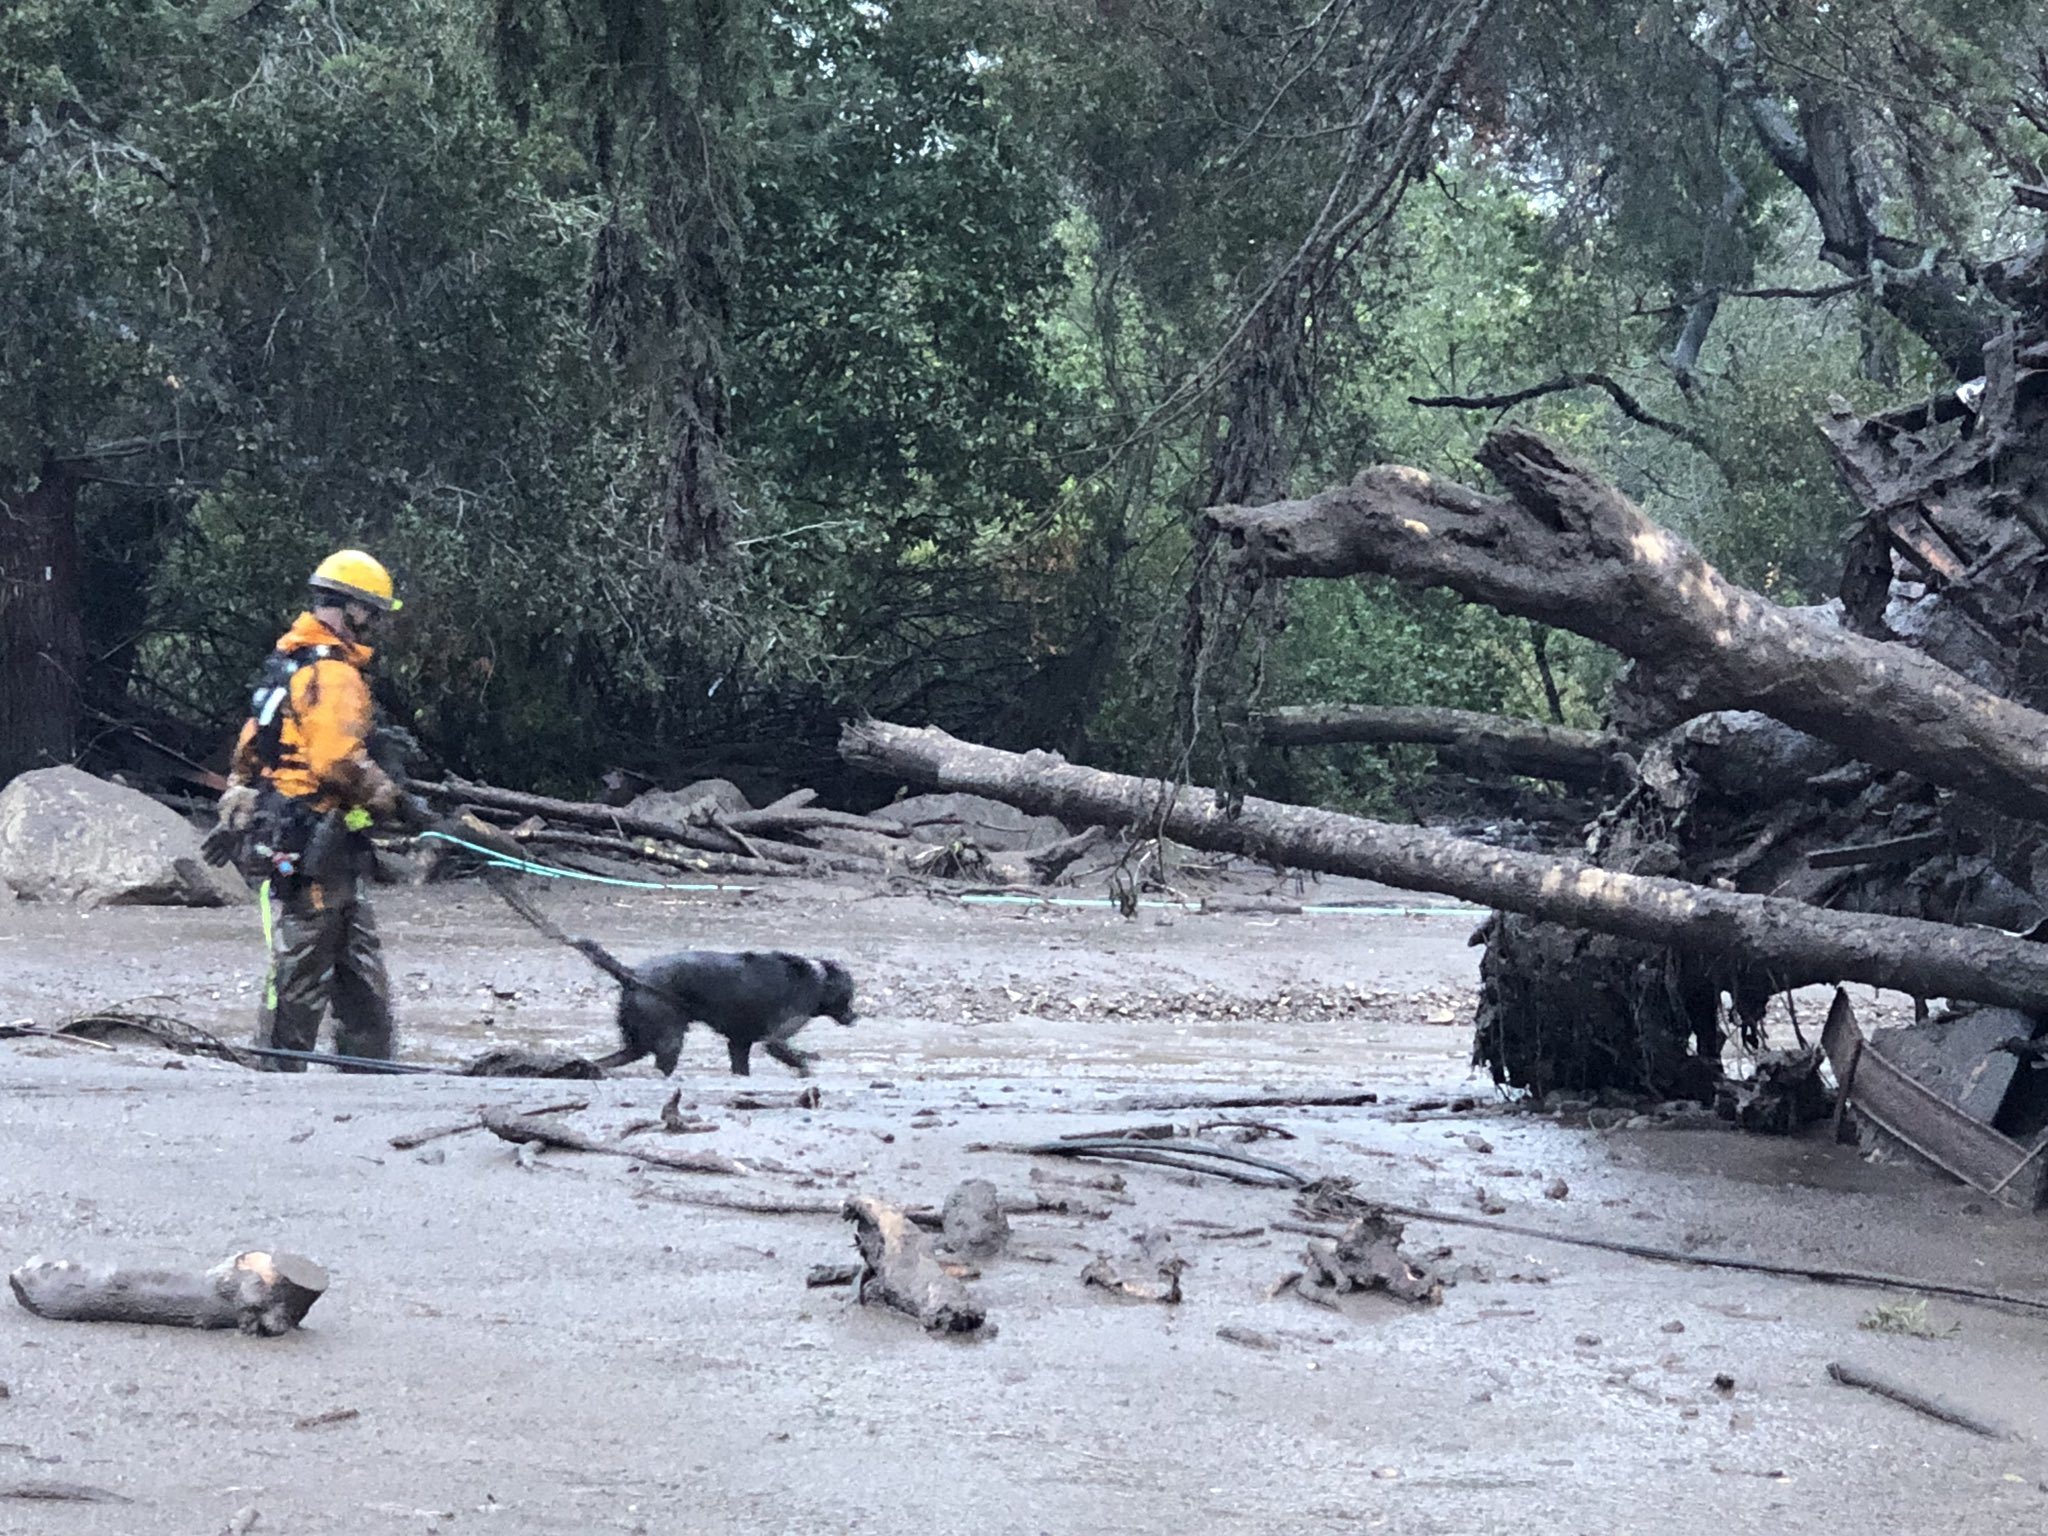 Scene from the 300 block of Hot Springs Road in Montecito following debris and mud flow due to heavy rain. (Photo: Mike Eliason / Santa Barbara County Fire)